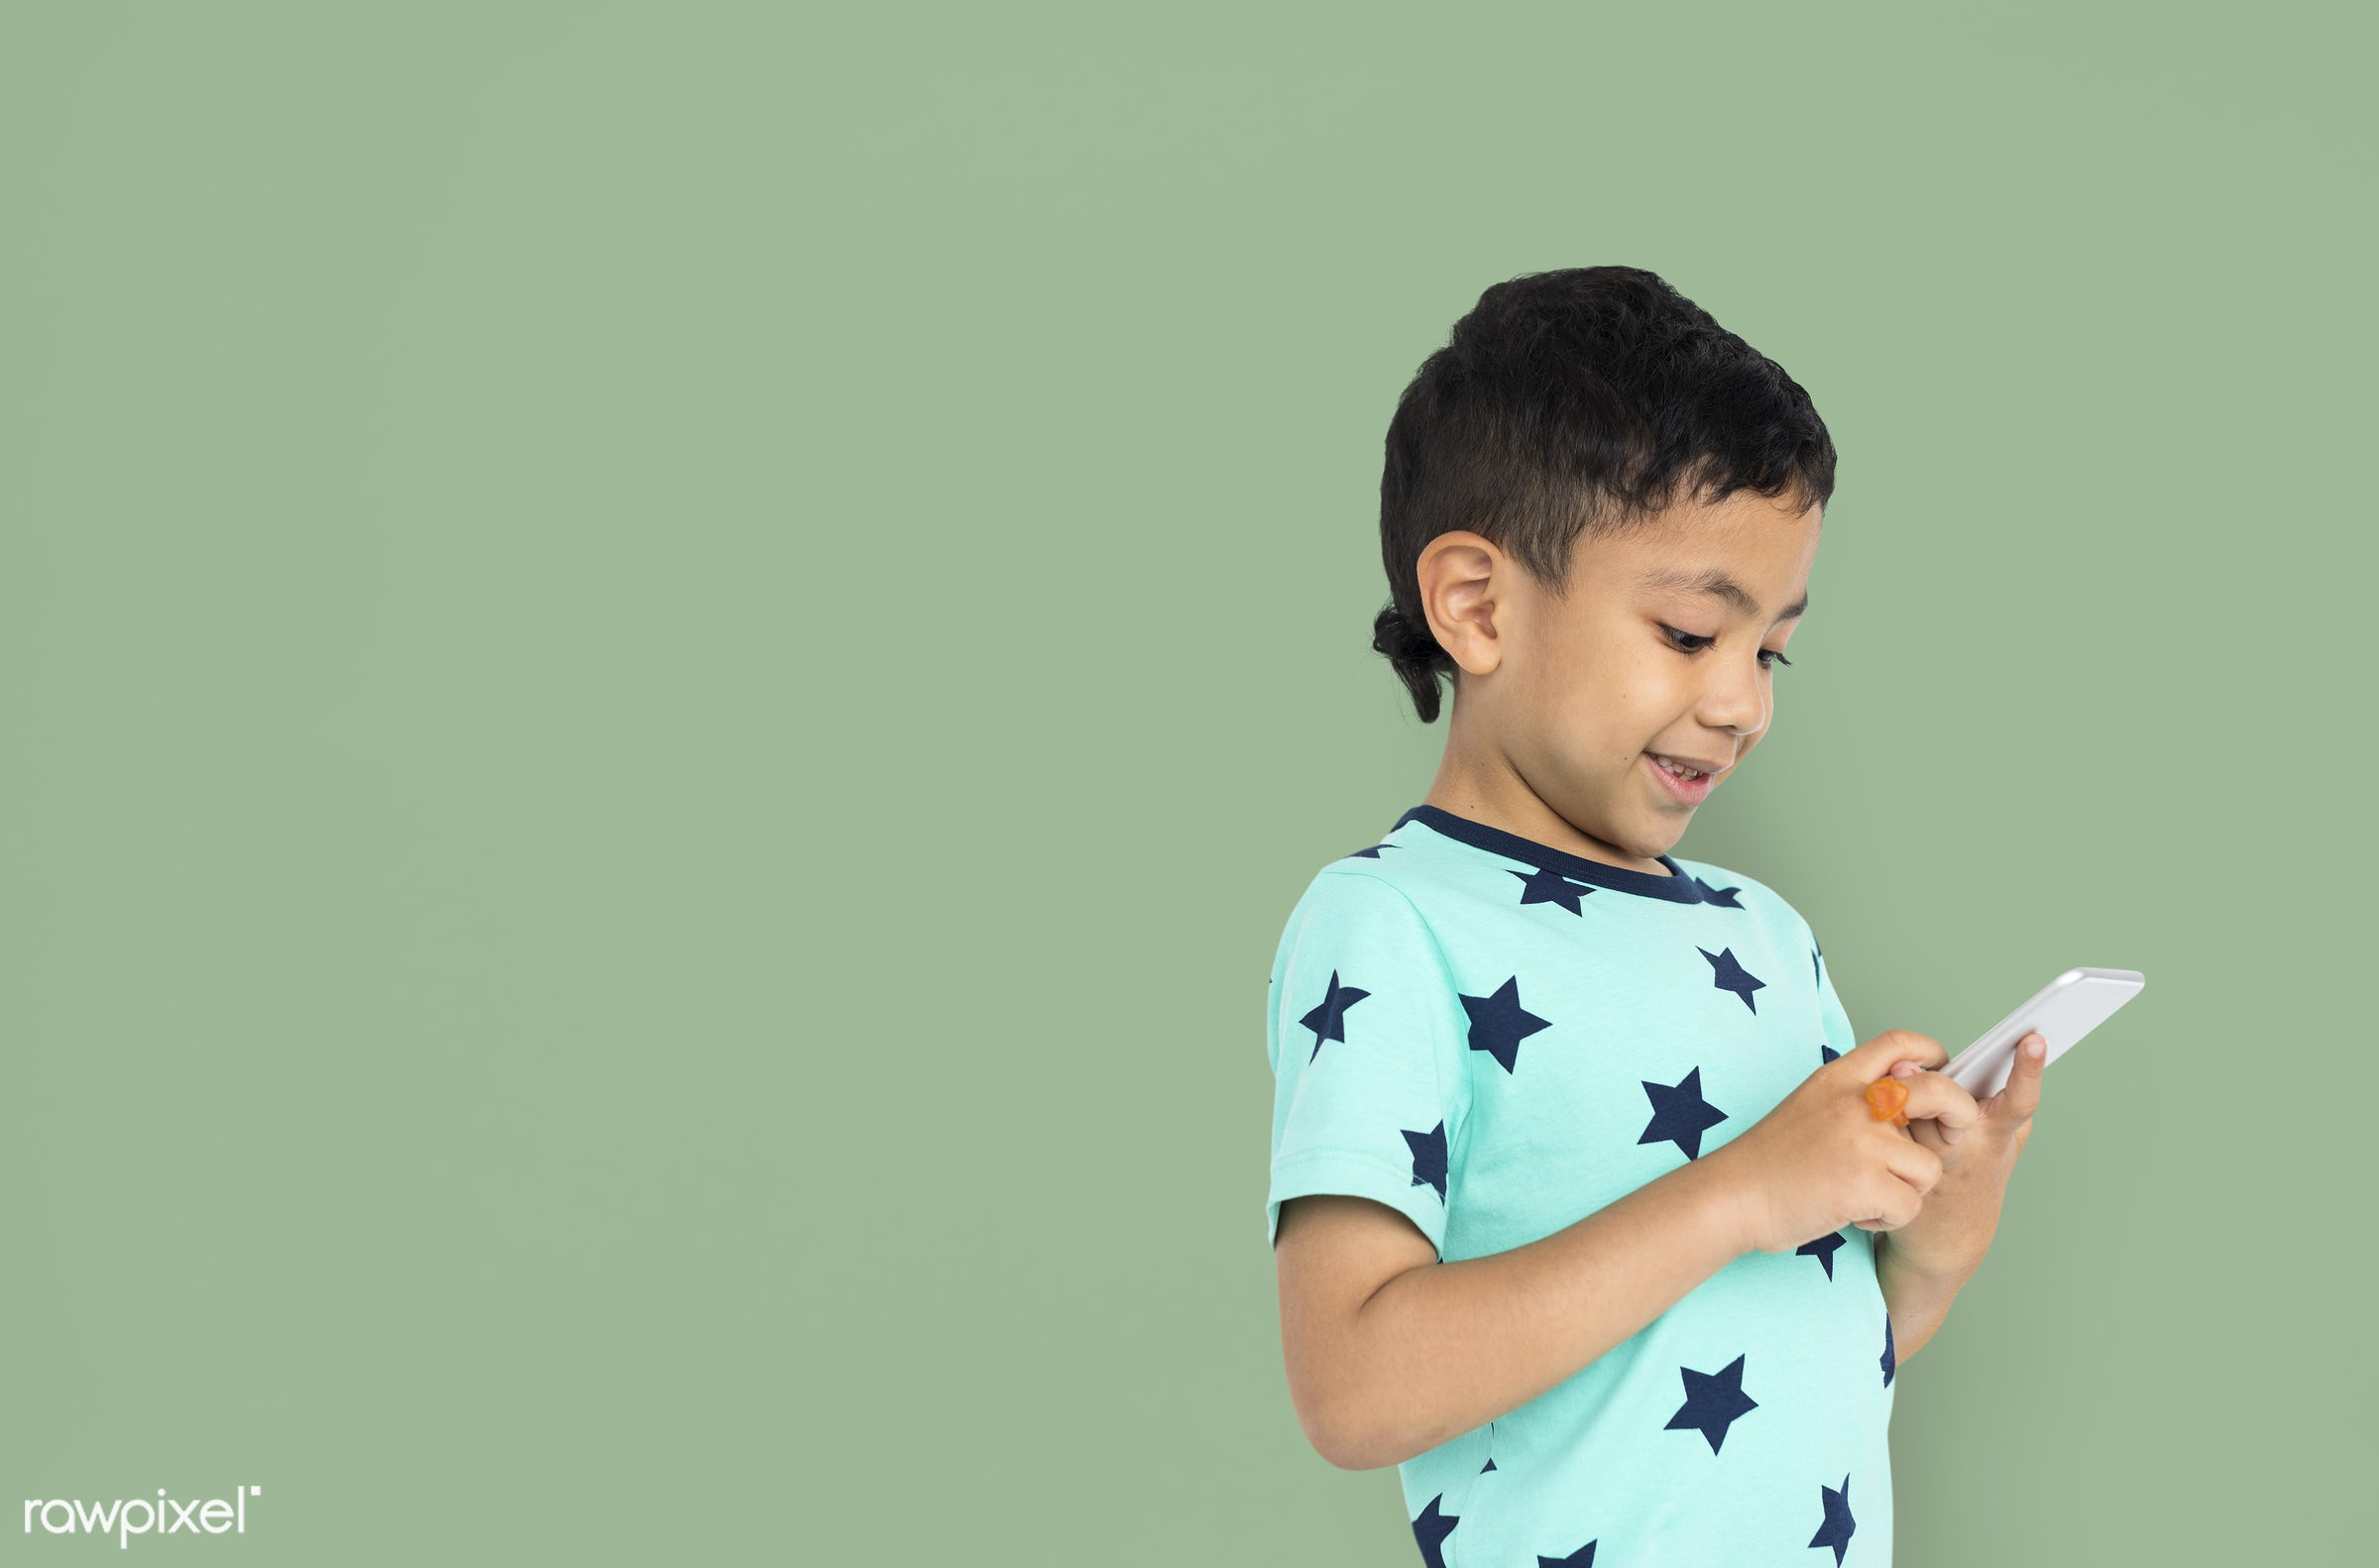 expression, studio, person, phone, joy, little, cute, people, kid, child, joyous, happy, mobile phone, cheerful, isolated,...